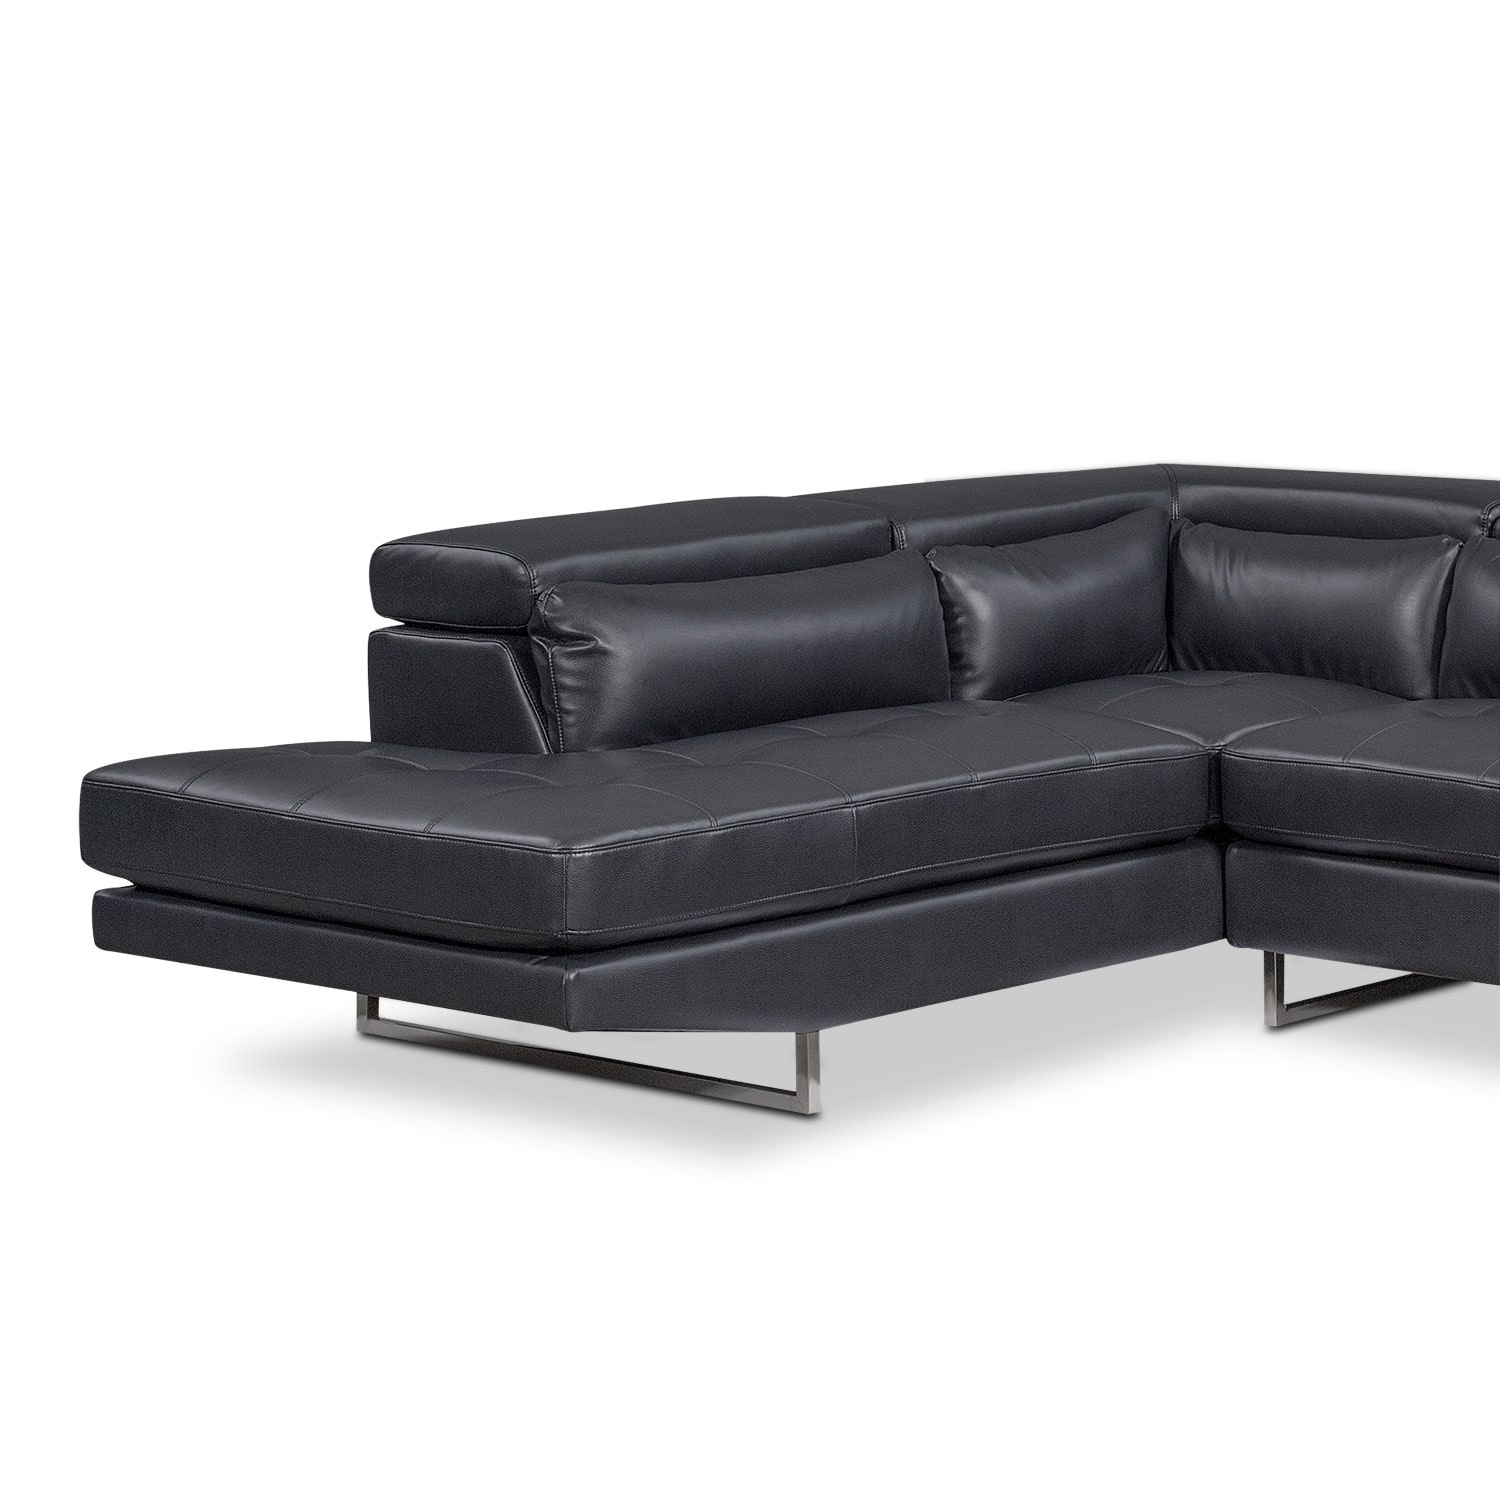 Torino 2 piece sectional with left facing chaise for 2 piece sectional sofa with chaise